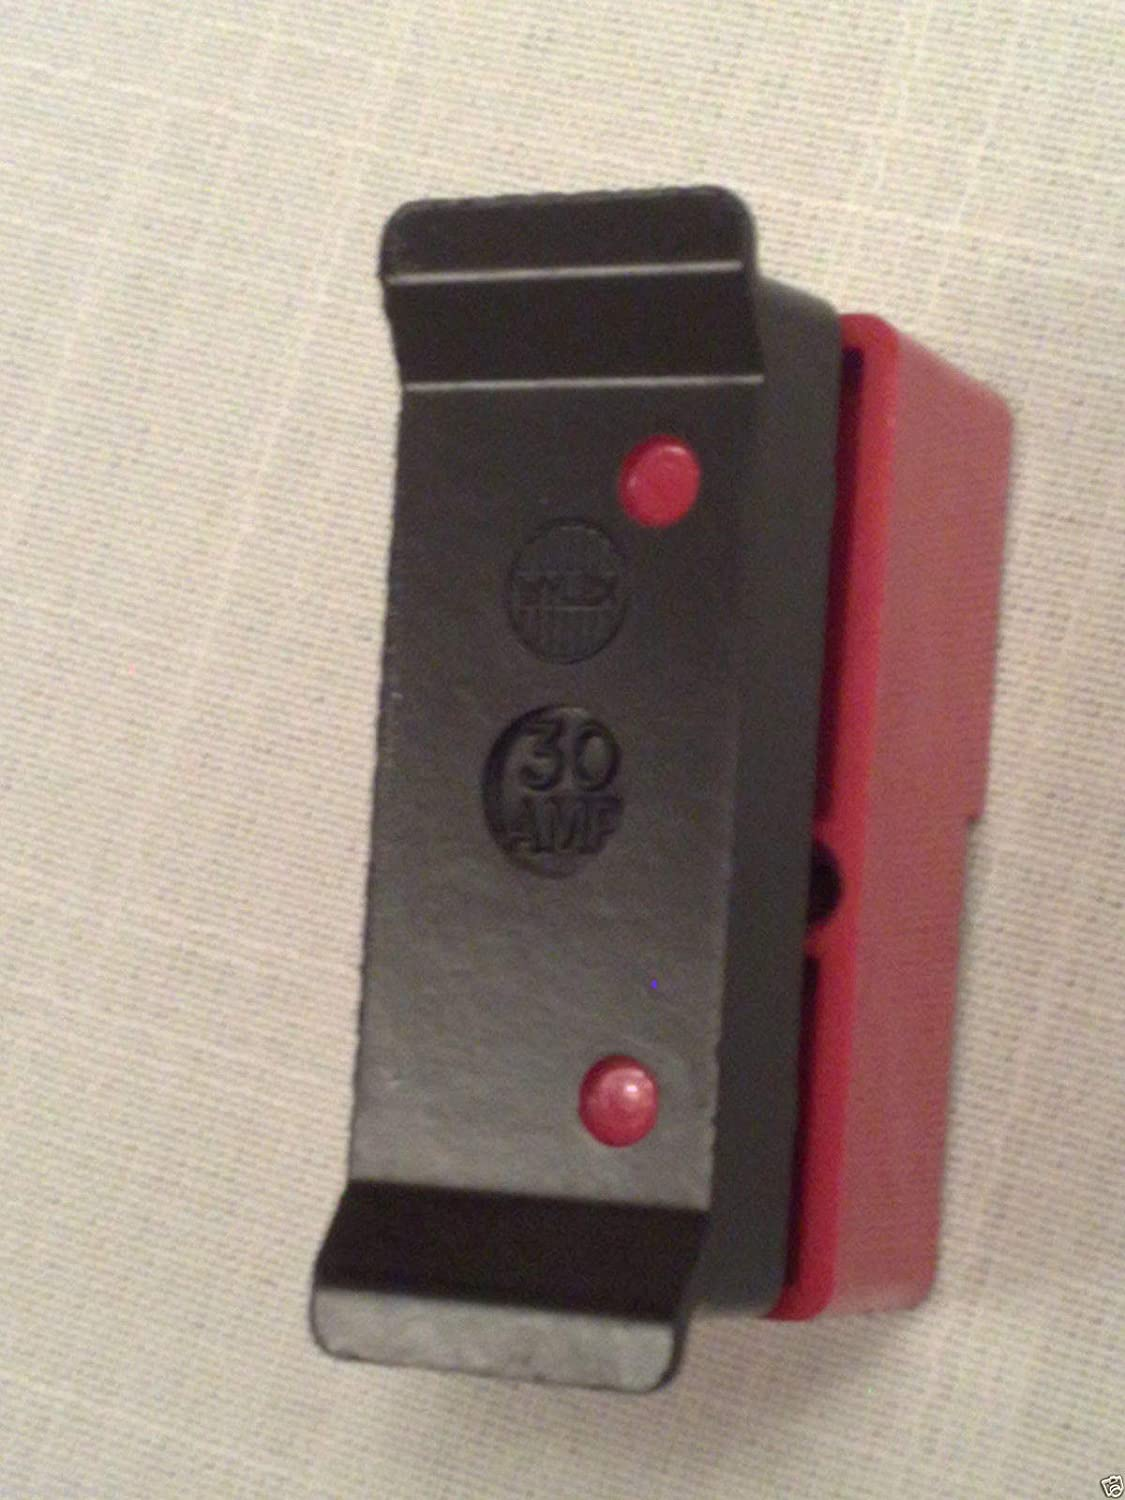 wylex standard fuse box wylex r30 rewireable fuse  carrier and base 30amp  red  amazon  wylex r30 rewireable fuse  carrier and